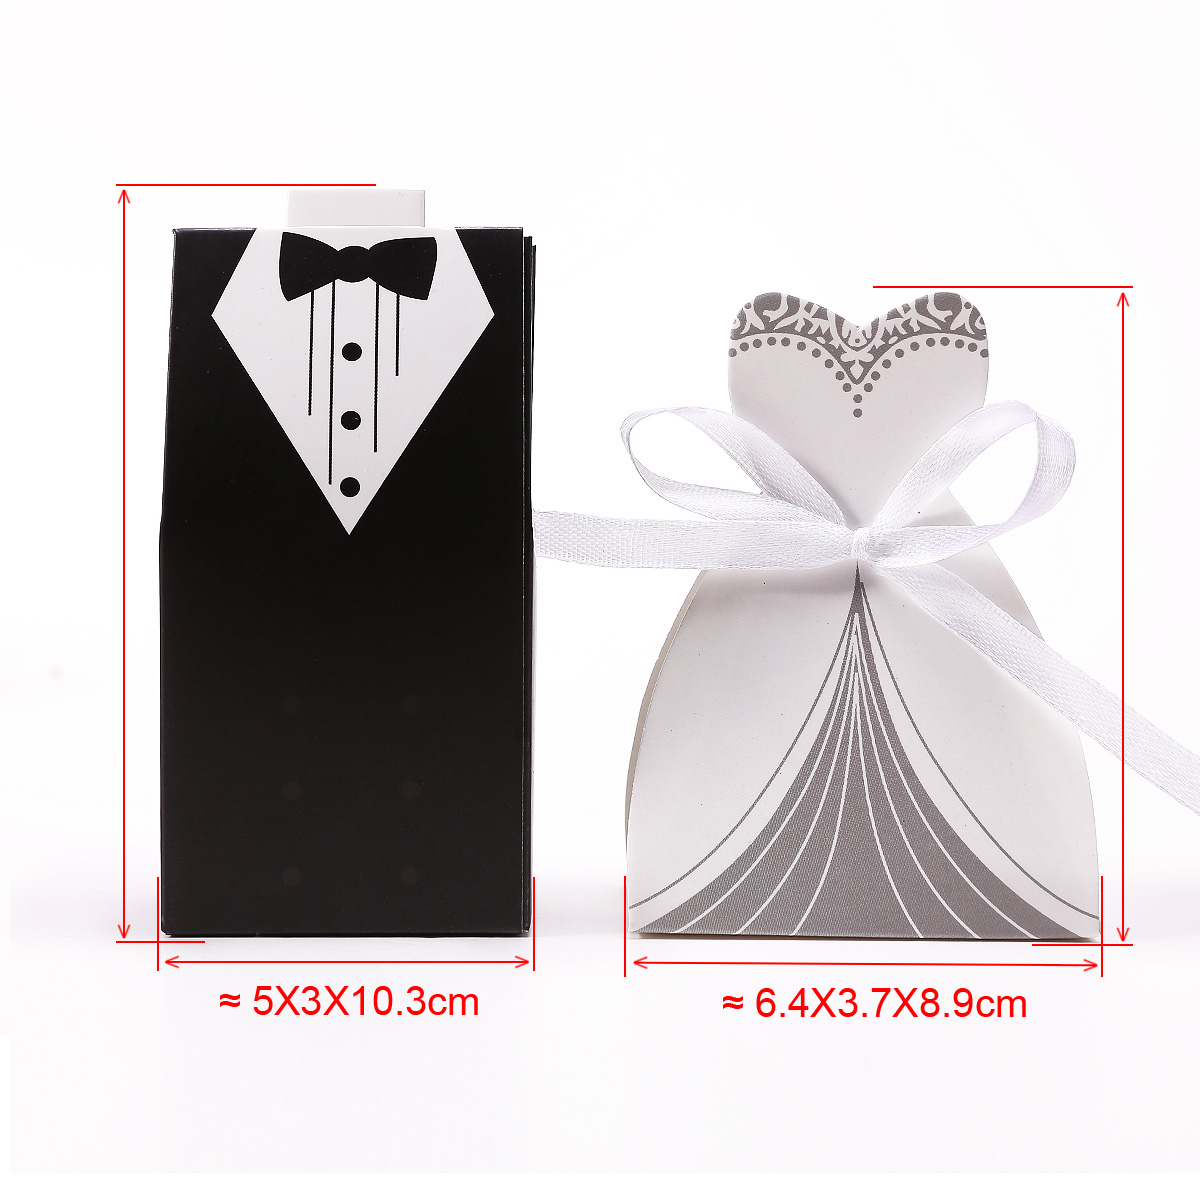 30 200 Pairs Wedding Favor Boxes Groom Bride Dress Tuxedo Shower